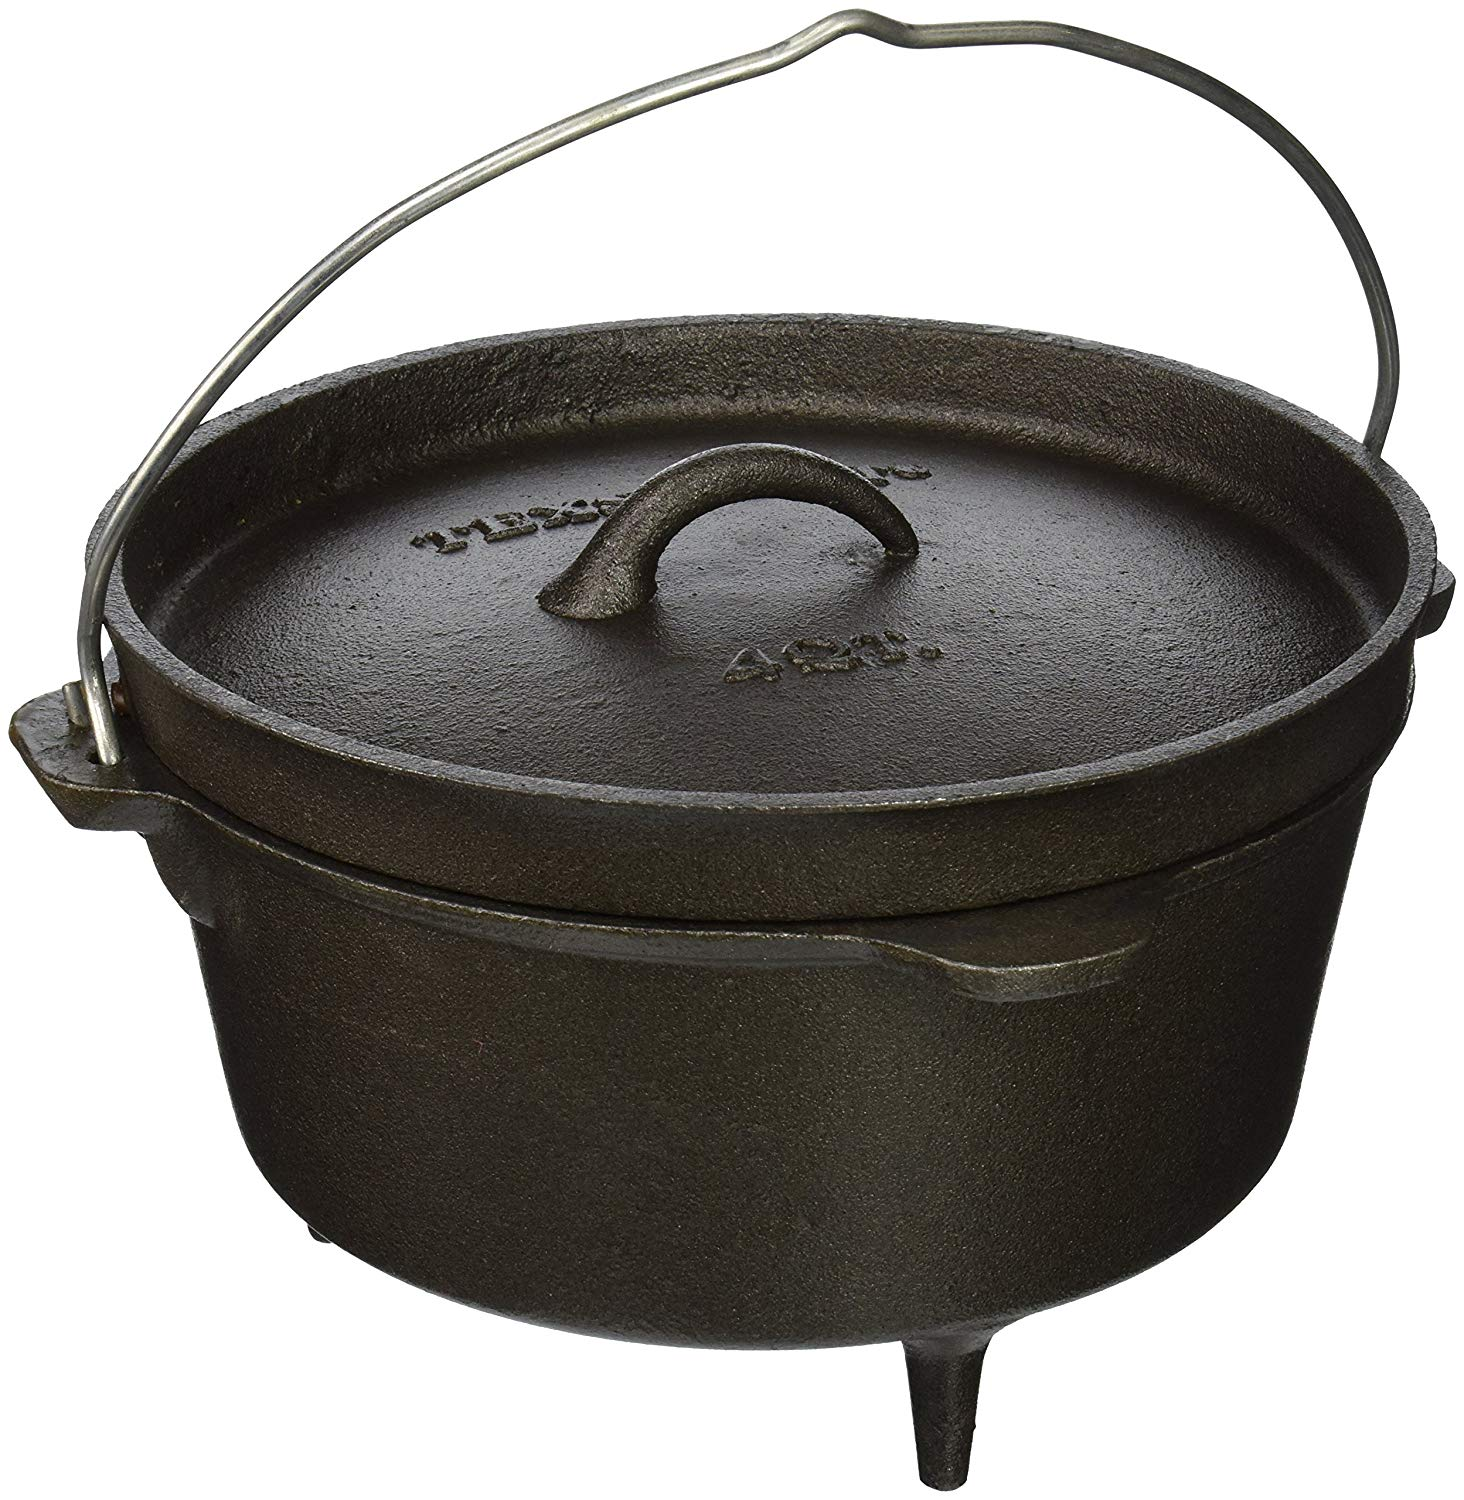 Texsport Dutch Oven